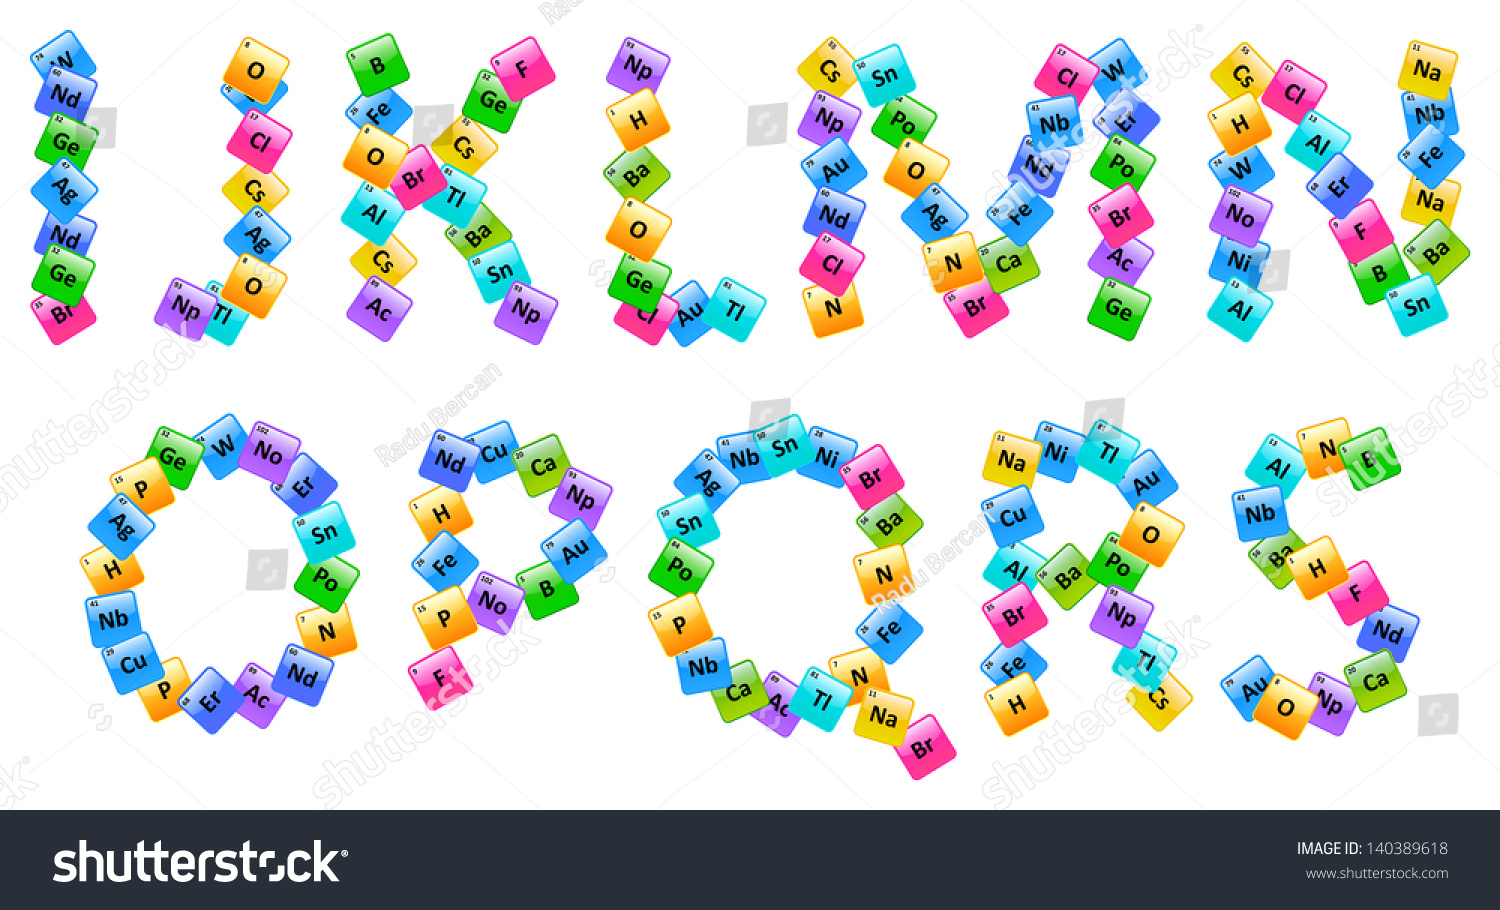 Periodic table alphabet images periodic table images periodic table elements alphabet letters is stock vector 140389618 periodic table of elements alphabet letters i s gamestrikefo Gallery